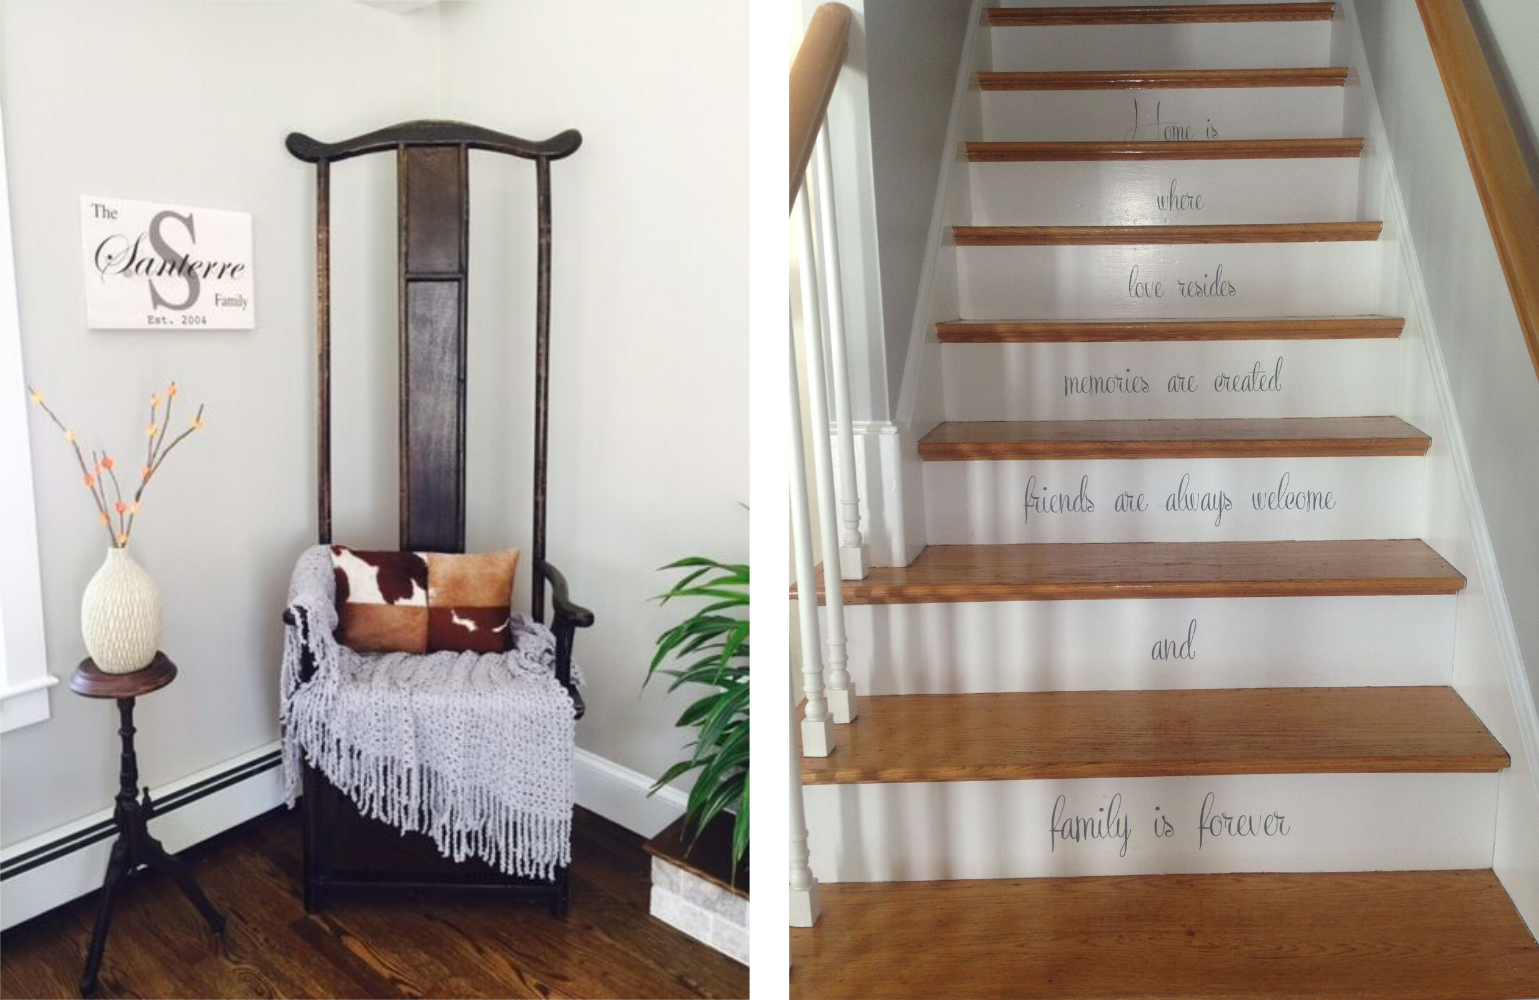 Ashlee's flair for design is evident throughout the home. Here a unique chair finds home in a corner and stencils greet visitors and remind the family how treasured they are.